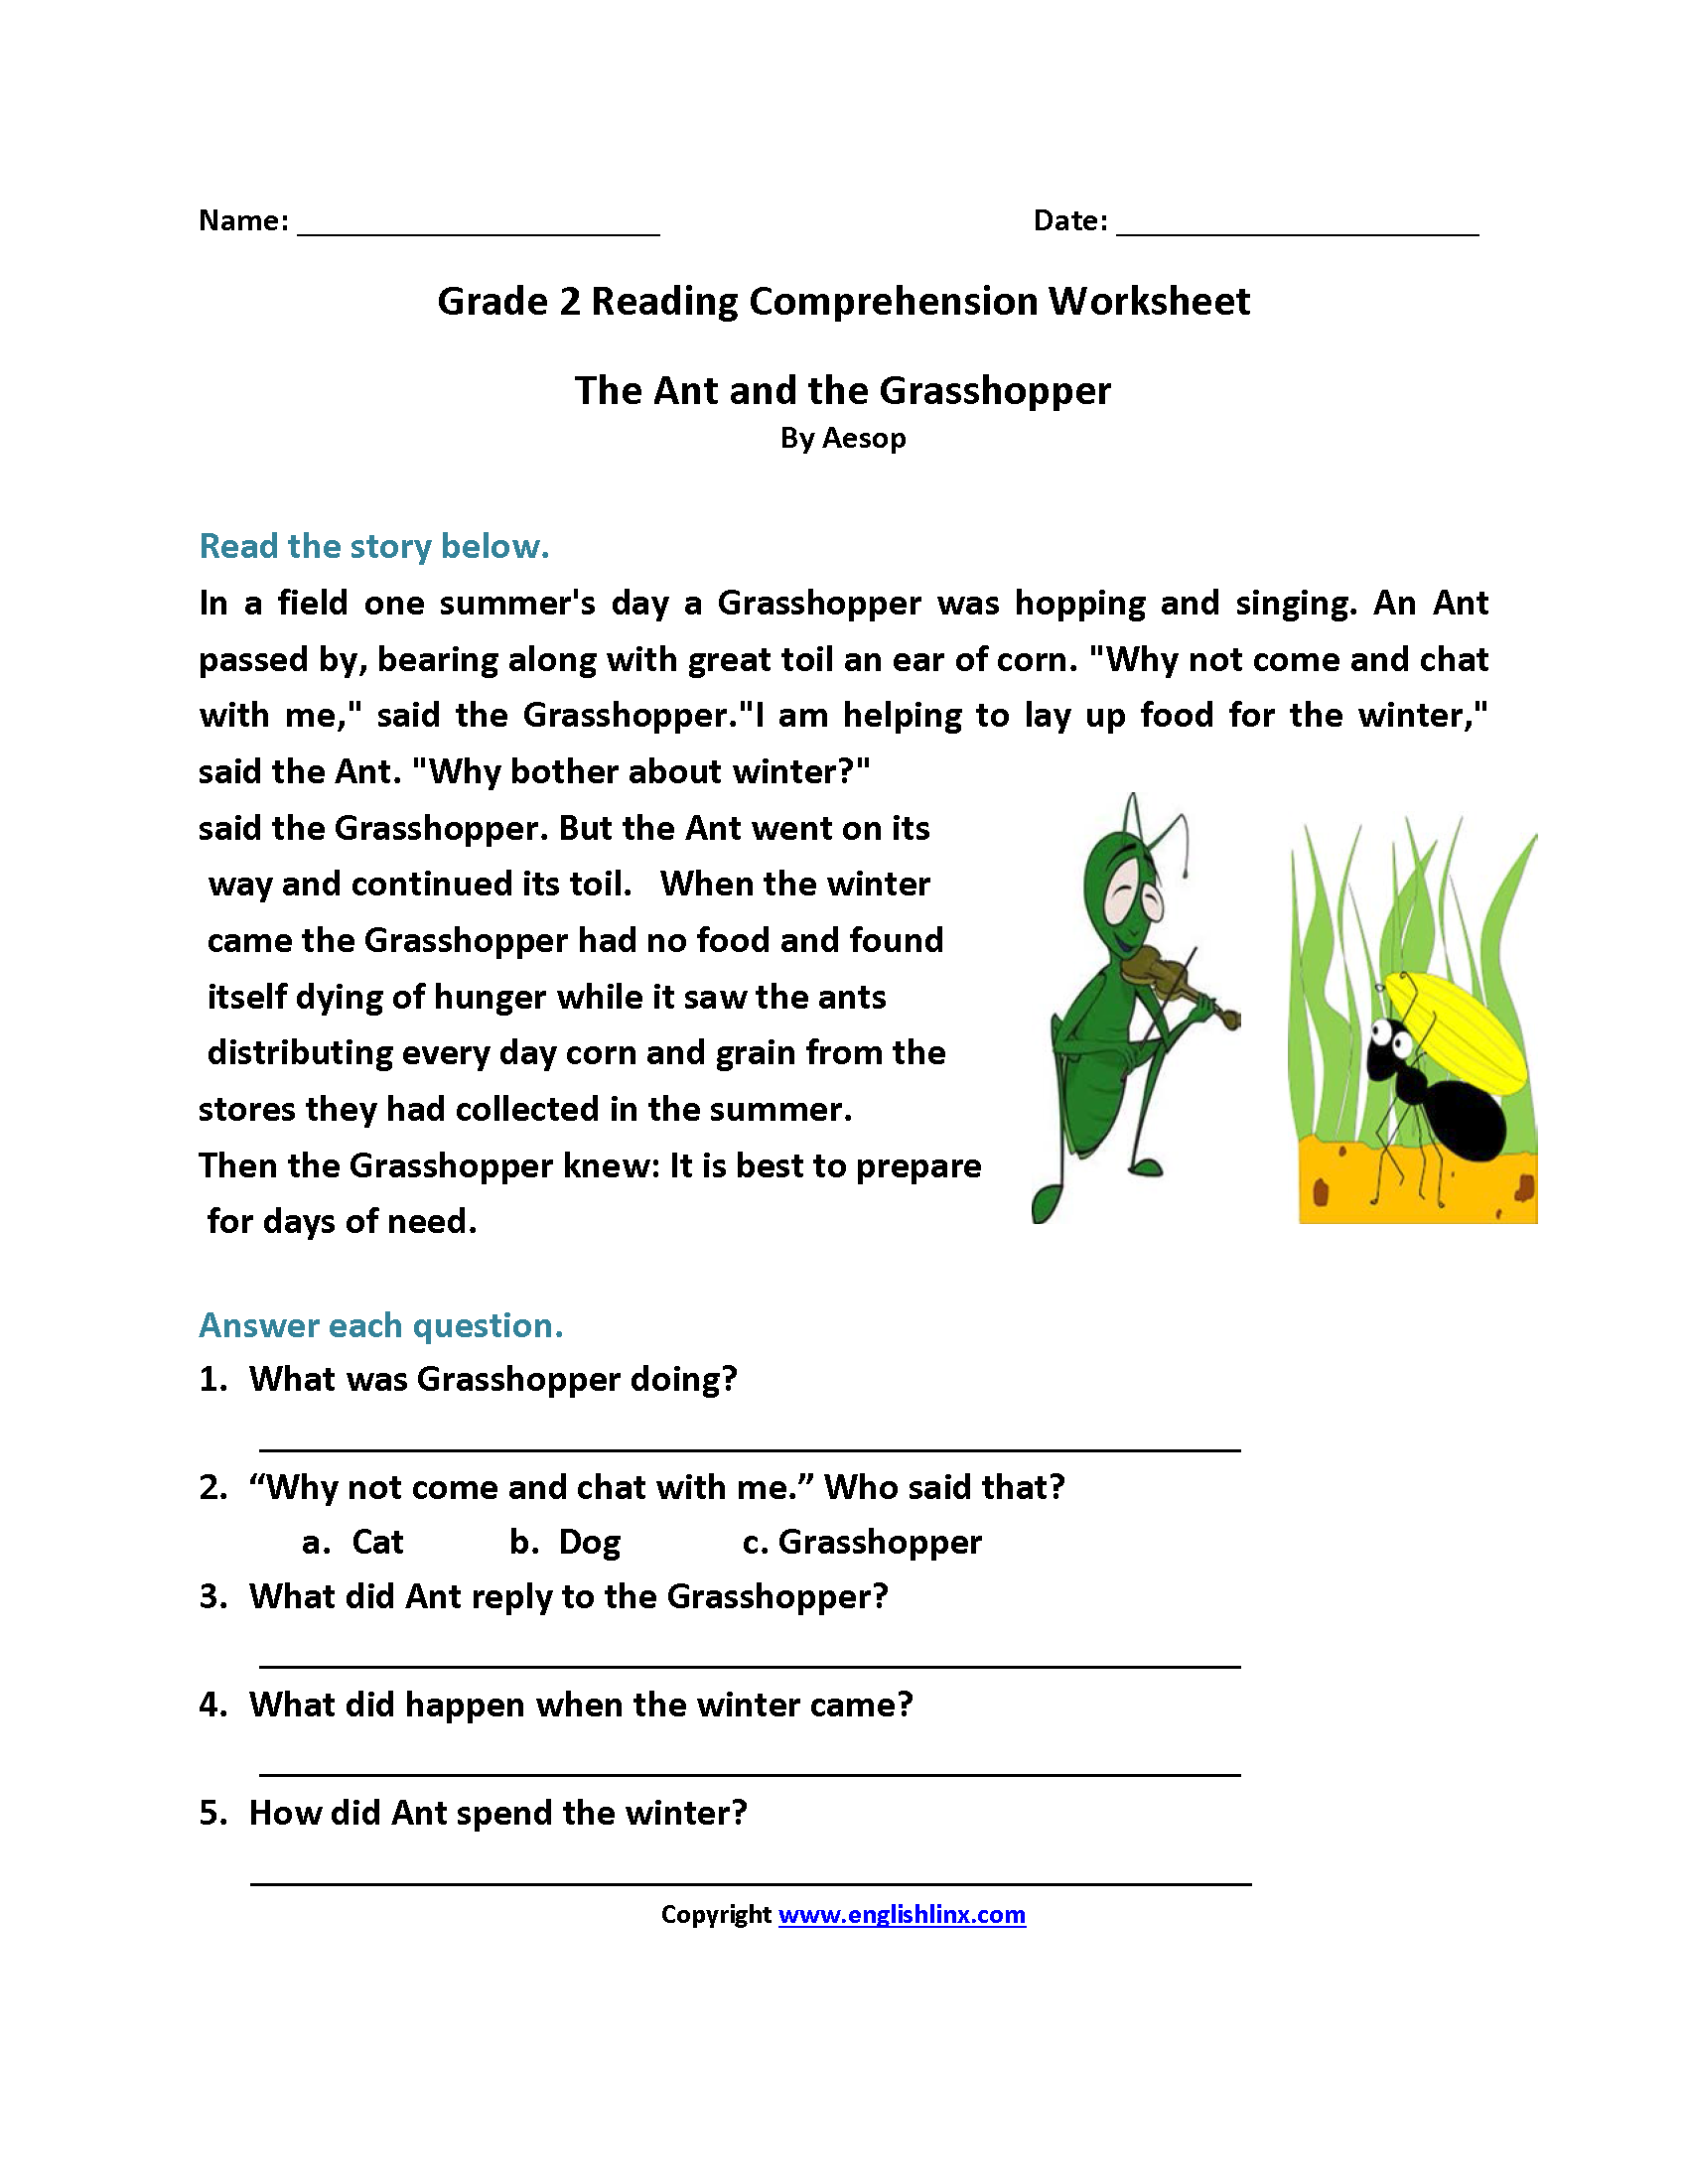 Second Grade Reading Worksheets | Englishlinx.com Board | Pinterest ...